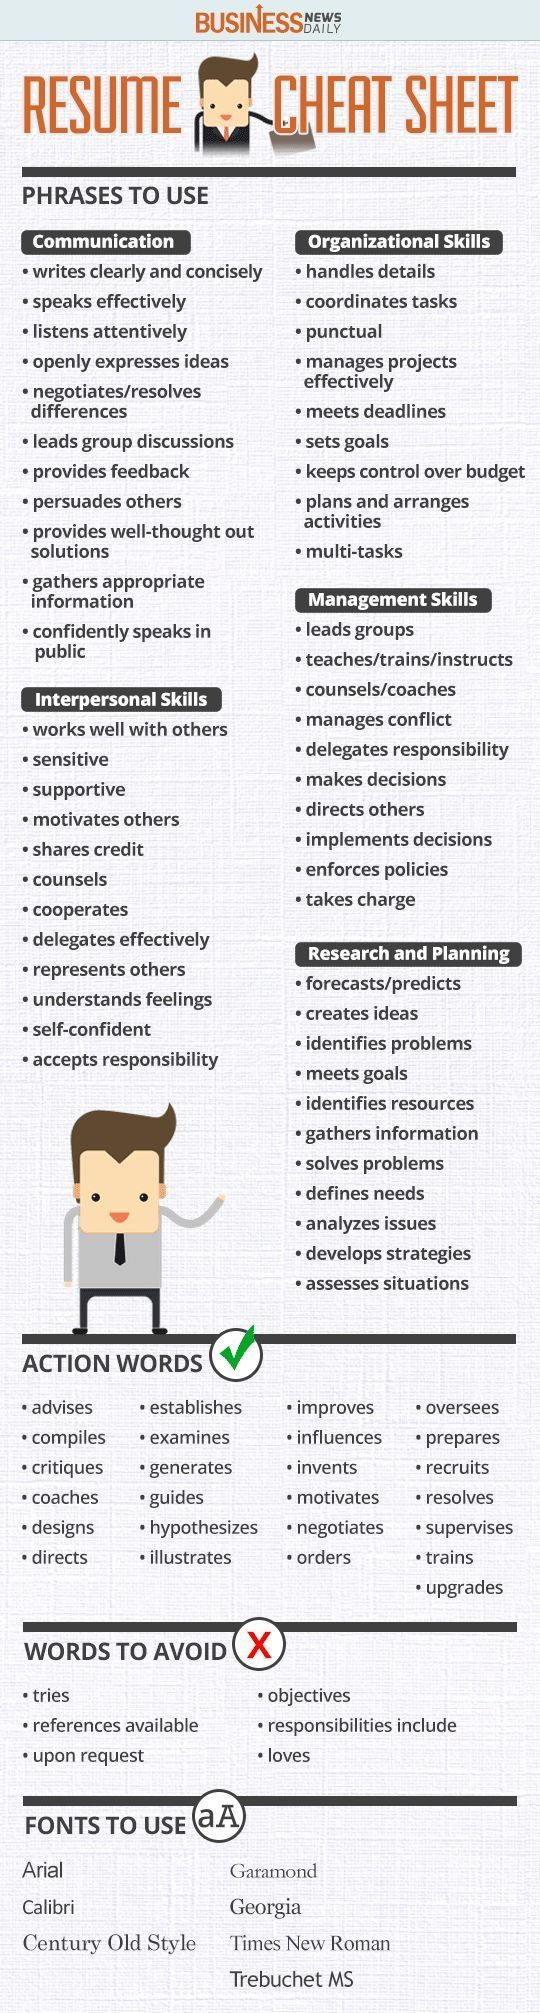 General Skills To Put On Resume 94 Best Resume Images On Pinterest  Interview Advice Interview .